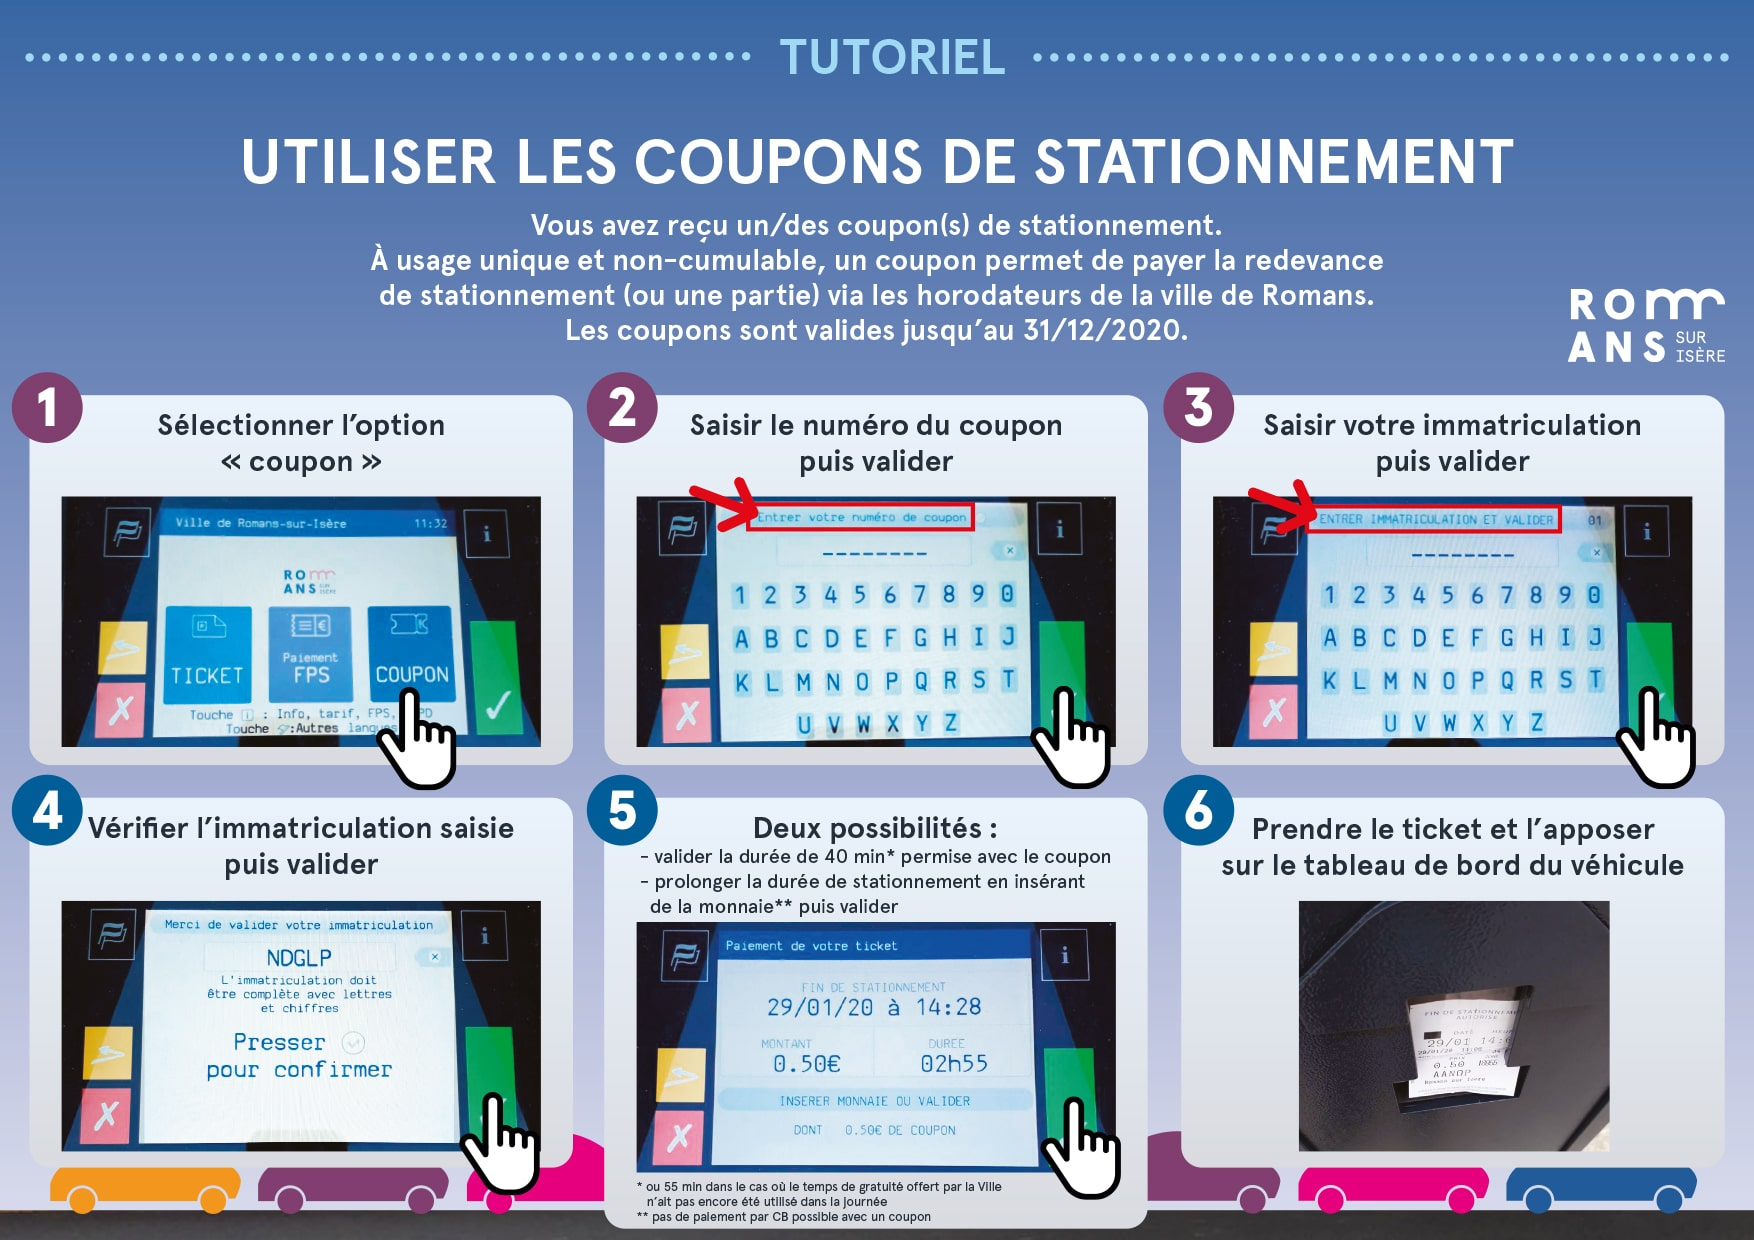 https://www.ville-romans.fr/application/files/8415/8098/6452/Tuto_coupons.jpg